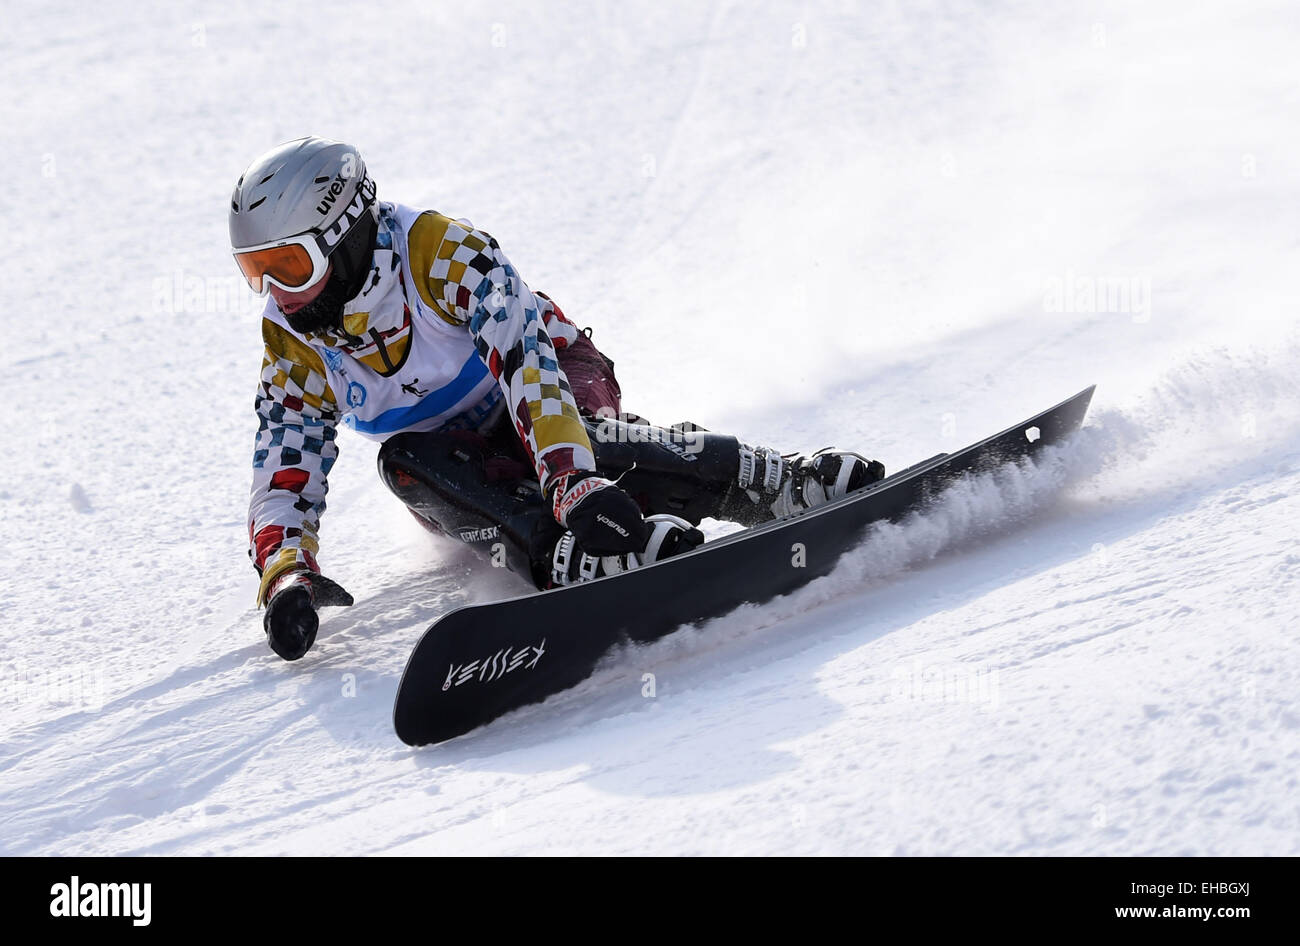 Yabuli Town, China. 11th March, 2015. Dmitry Sarsembaev of Russia competes during the Men's Giant Slalom match on Stock Photo